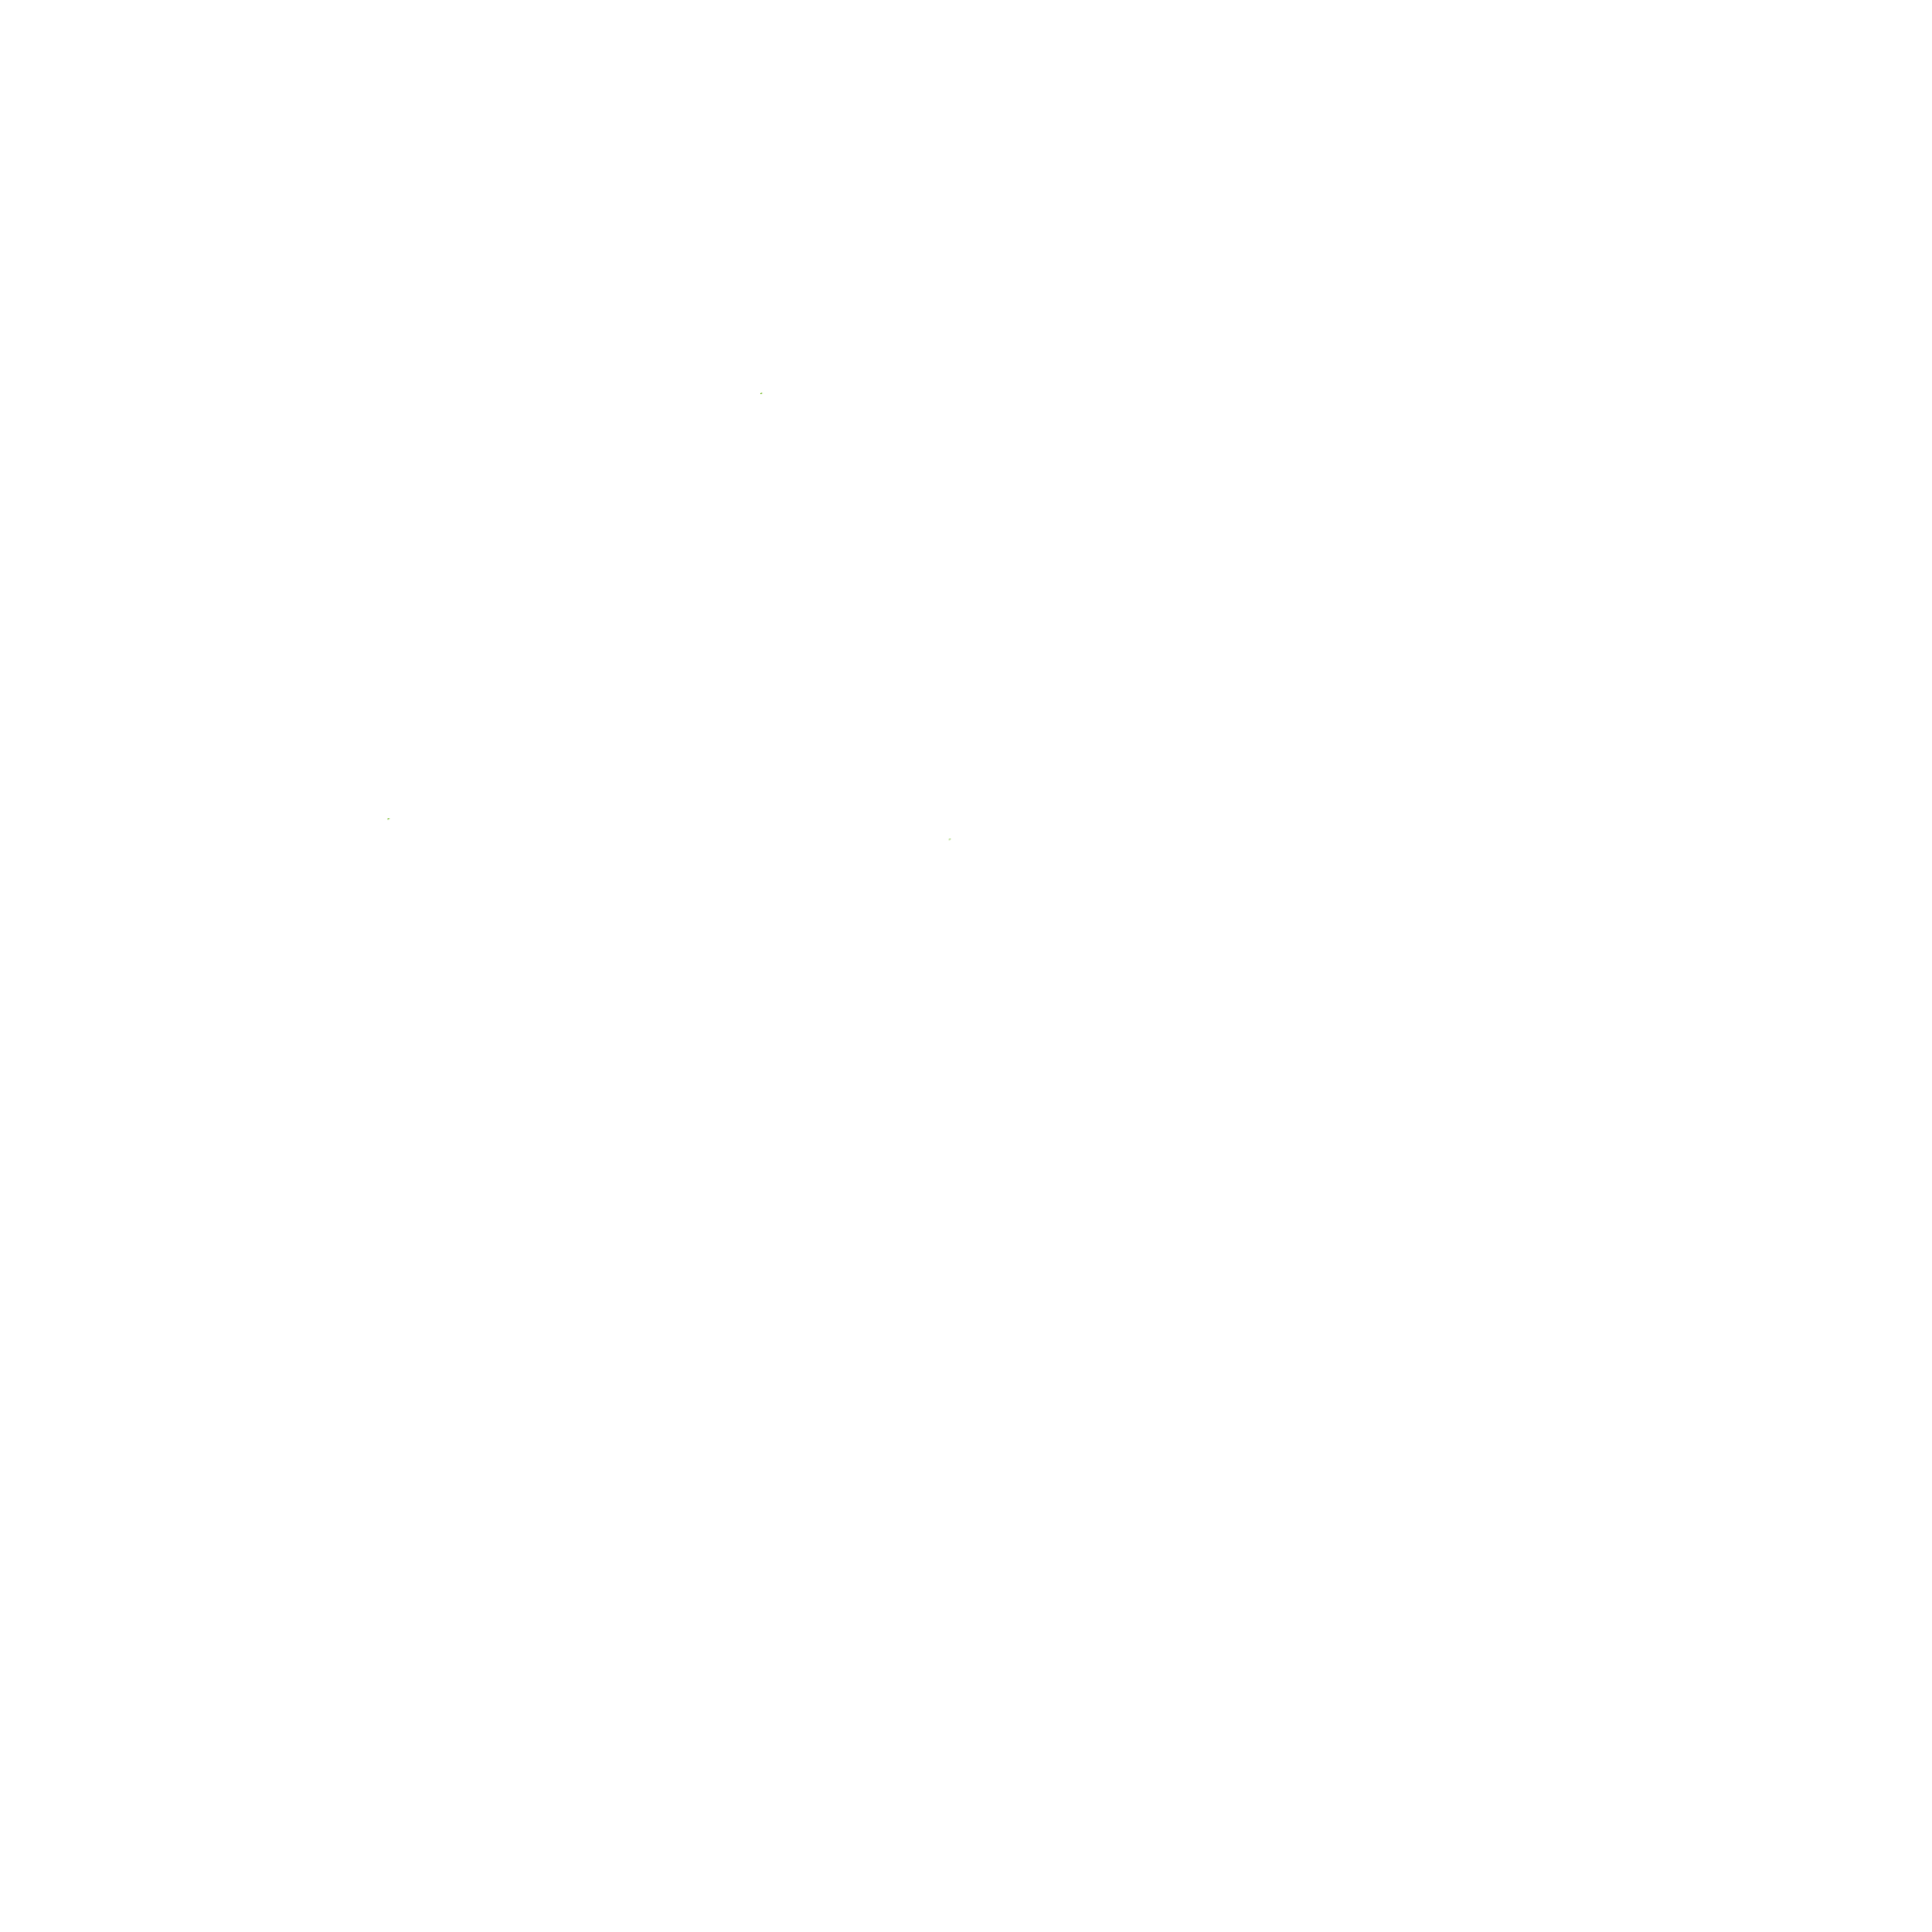 Tree of life png. Black and white transparent